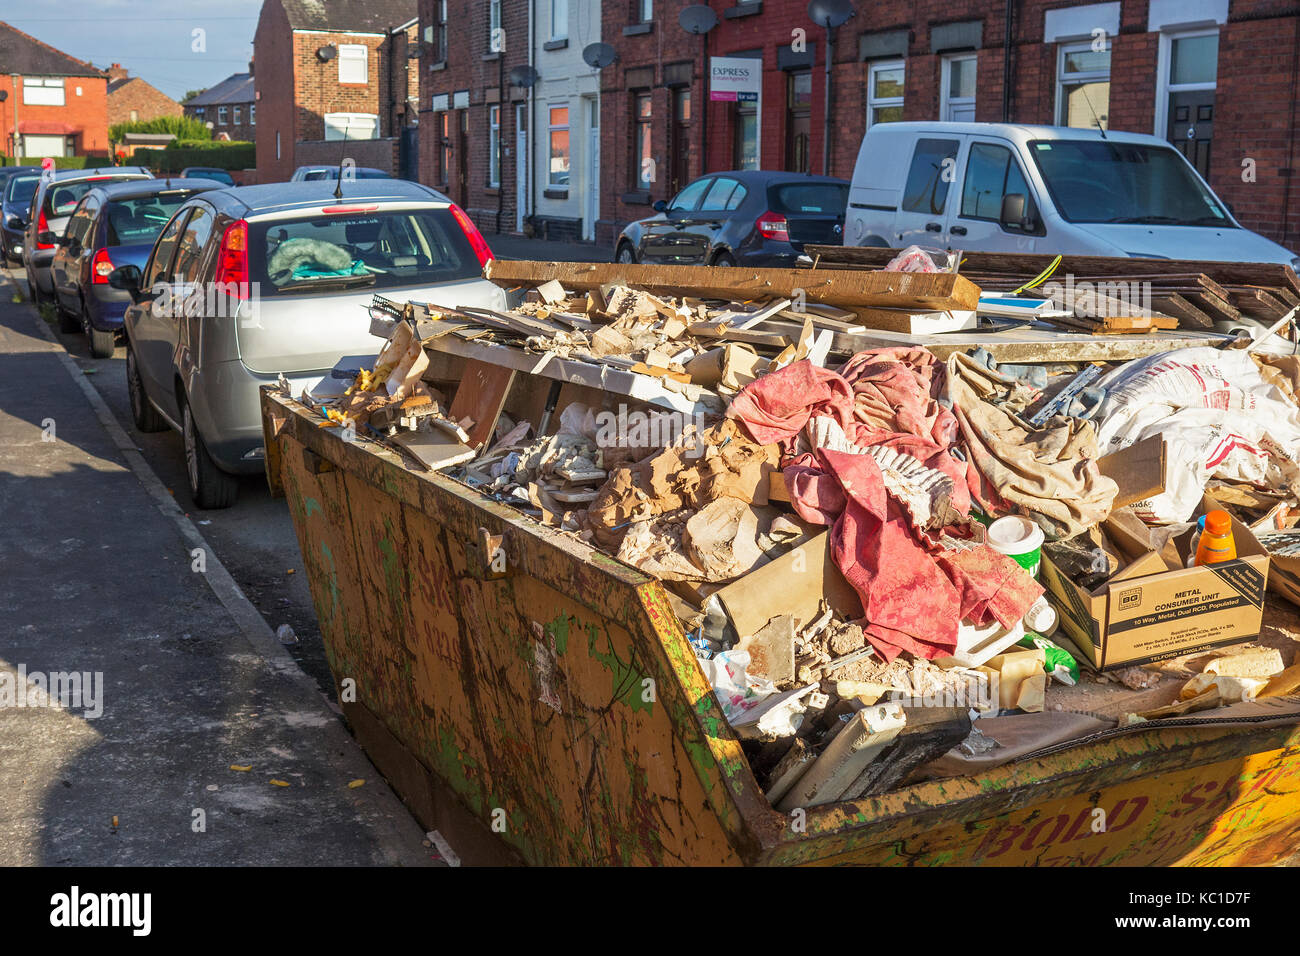 a full builders skip in a residential street, the north of england, - Stock Image